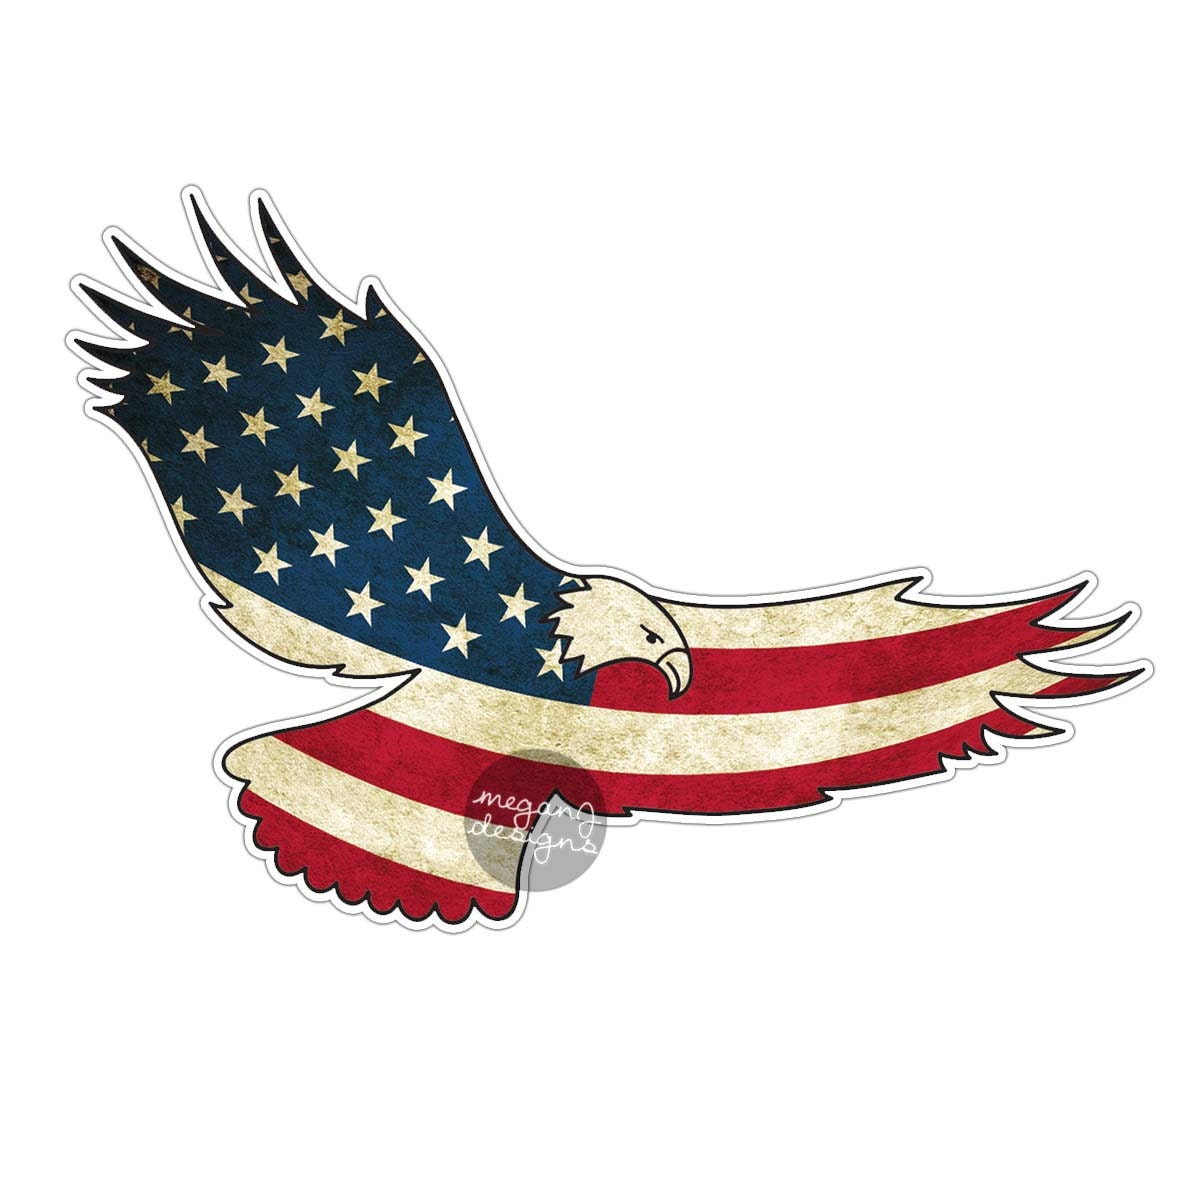 American flag eagle car decal sticker patriotic usa bumper sticker laptop decal america stars stripes red white blue grunge men eagle